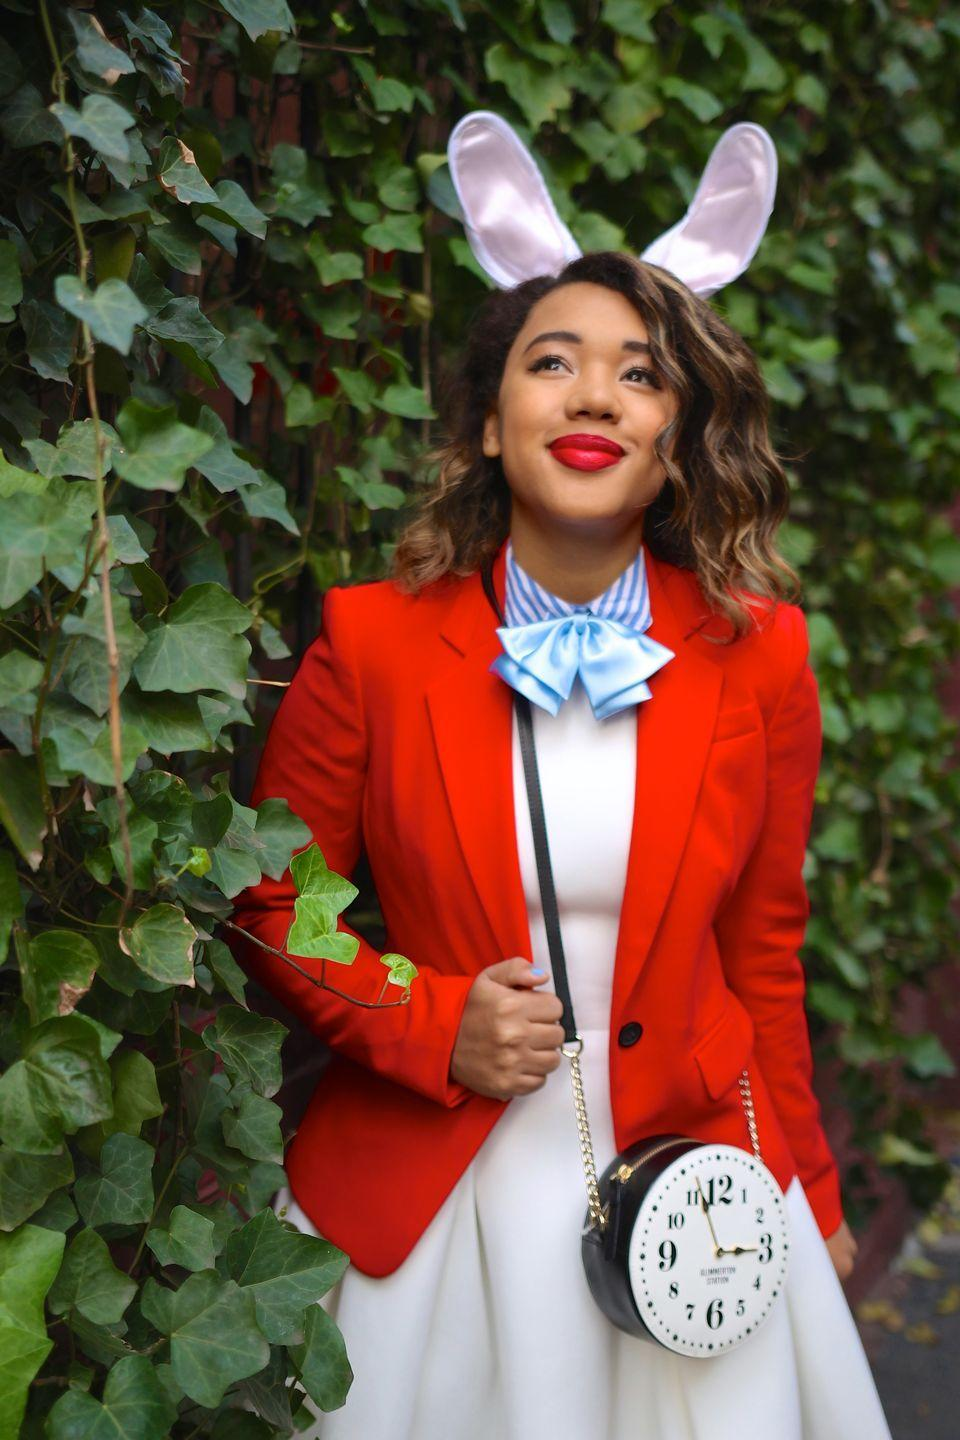 """<p>If you're running late for a very important date, and that date happens to be October 31, this is an easy costume to whip up.</p><p><strong>Get the tutorial at <a href=""""https://www.colormecourtney.com/disney-diy-2-easy-halloween-costumes/"""" rel=""""nofollow noopener"""" target=""""_blank"""" data-ylk=""""slk:Color Me Courtney"""" class=""""link rapid-noclick-resp"""">Color Me Courtney</a>.</strong></p><p><a class=""""link rapid-noclick-resp"""" href=""""https://www.amazon.com/s/ref=nb_sb_noss_2?url=search-alias%3Dfashion&field-keywords=clock+purse&tag=syn-yahoo-20&ascsubtag=%5Bartid%7C10050.g.4571%5Bsrc%7Cyahoo-us"""" rel=""""nofollow noopener"""" target=""""_blank"""" data-ylk=""""slk:SHOP CLOCK PURSES"""">SHOP CLOCK PURSES</a></p>"""